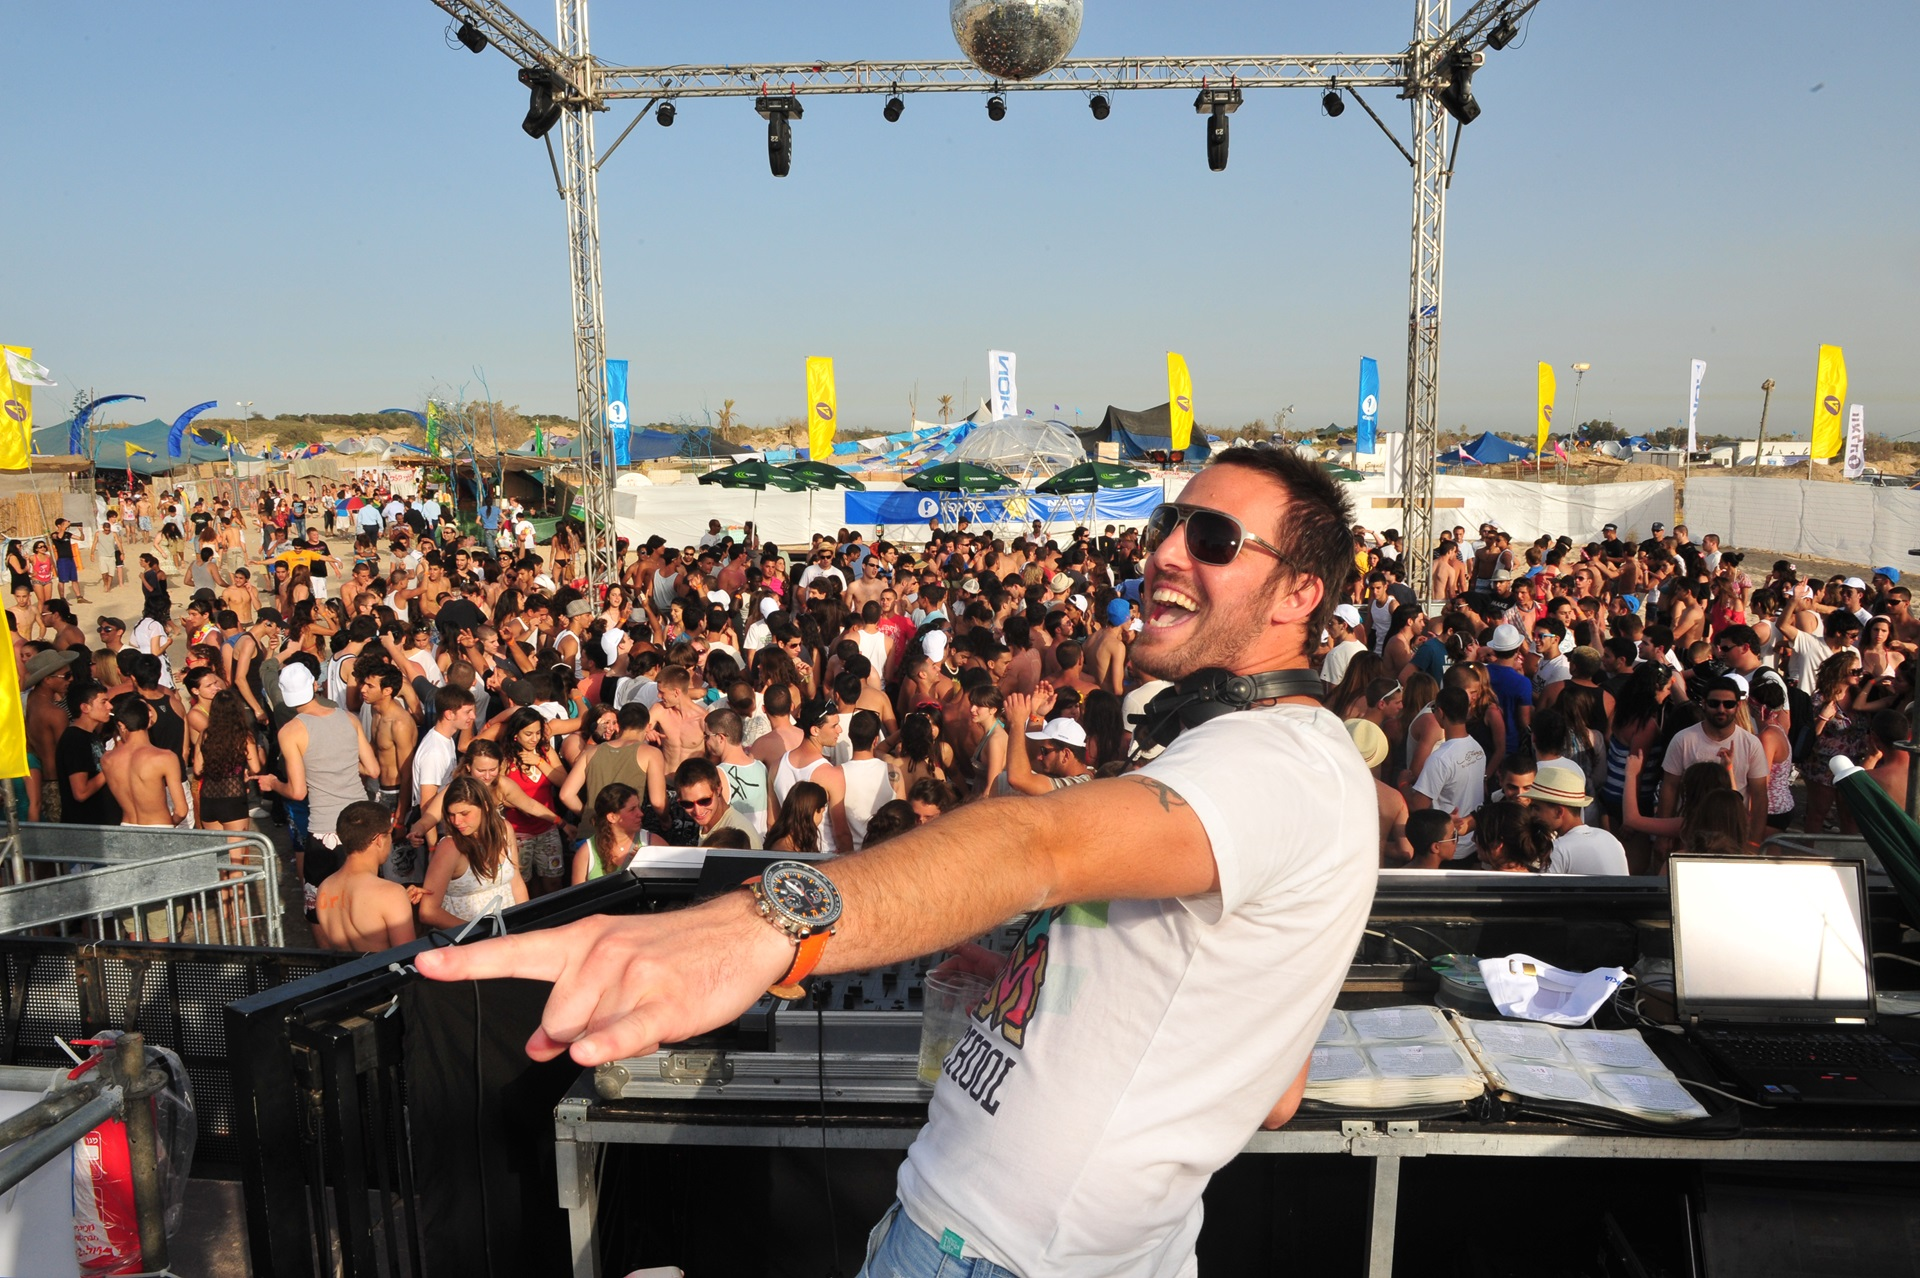 lets have an endless party in Mykonos island